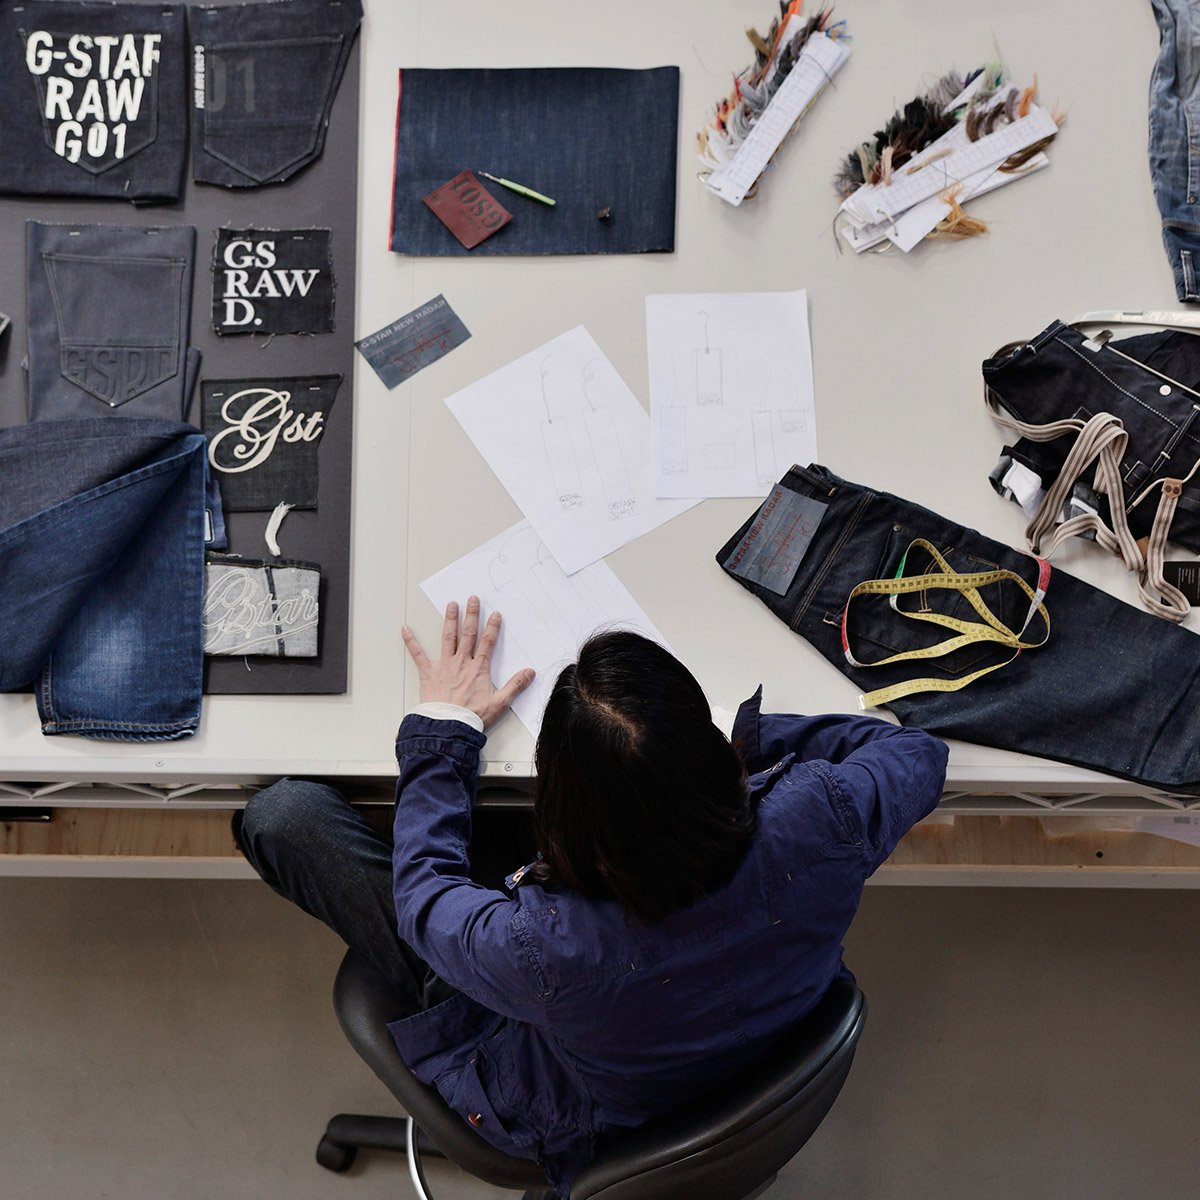 A glimpse into a Product Design Unit where our designers get creative. #WhatisRAW https://t.co/TLUhjW3ijj